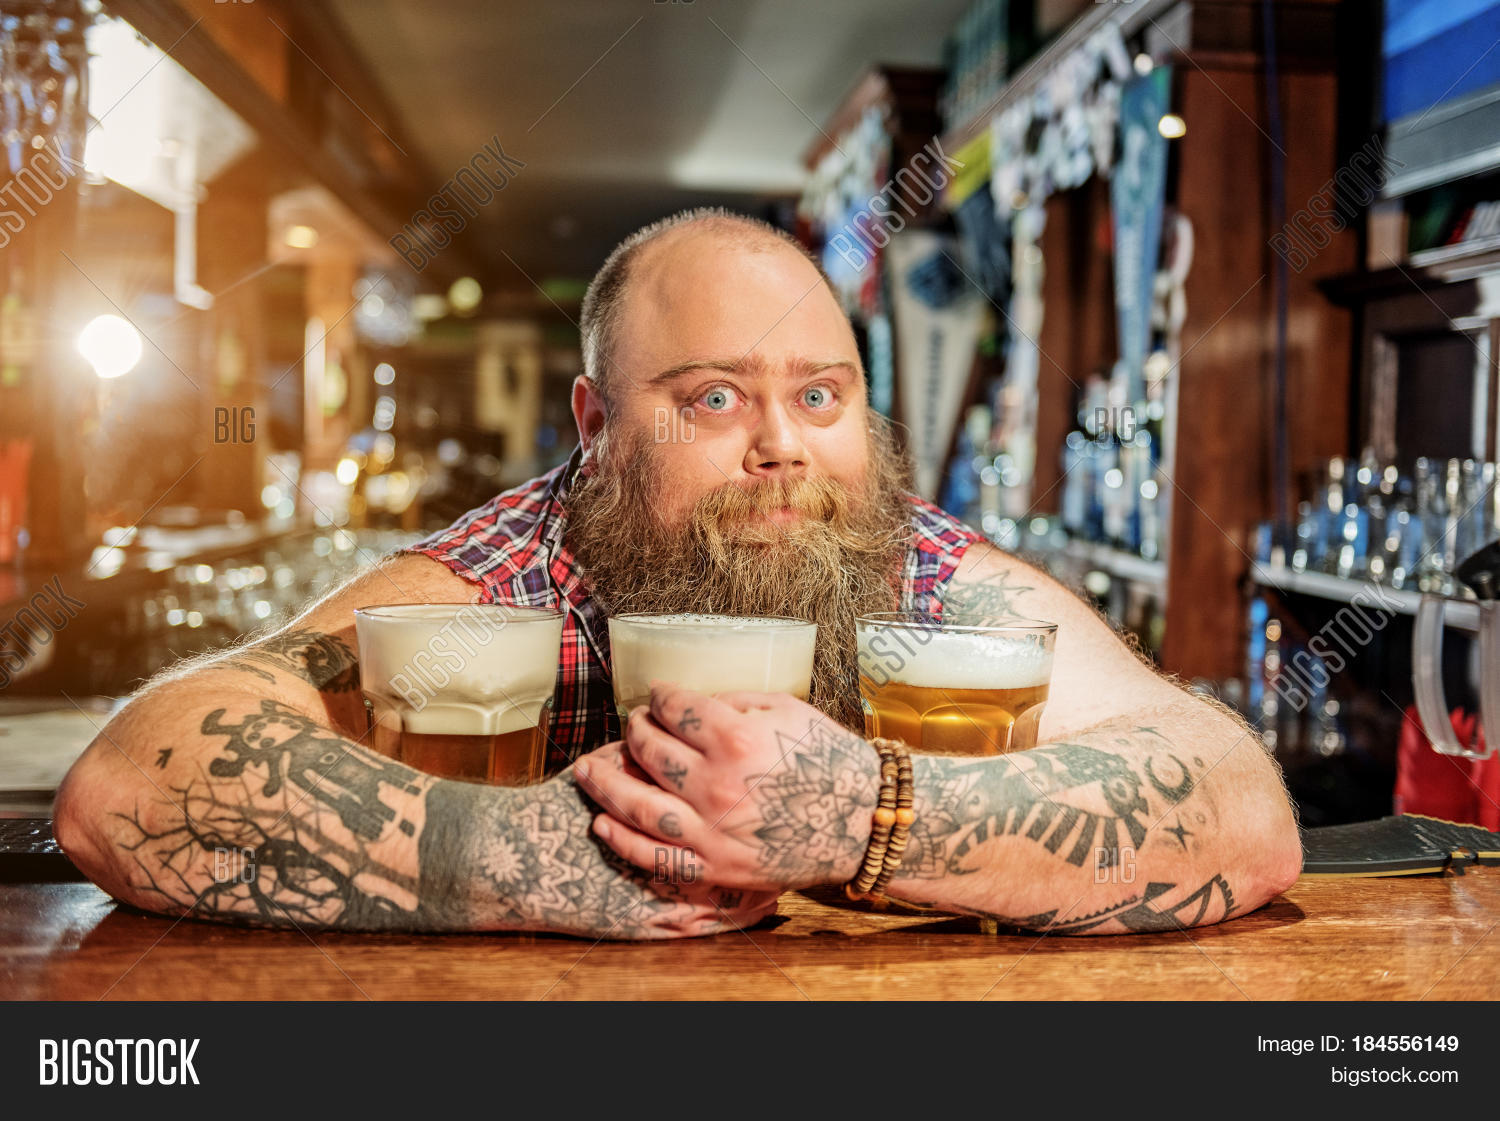 adult,alcohol,ale,alehouse,bar,barman,beard,beer,beverage,boozer,brew,bubble,can,container,counter,cup,dramshop,drink,equipment,fat,faucet,foamy,frothy,glass,hand,hold,hug,indoor,keep,keg,light,liquid,male,man,mug,pint,portrait,pour,pub,pump,refreshment,service,staff,stout,tap,taste,thirsty,tool,waiter,work